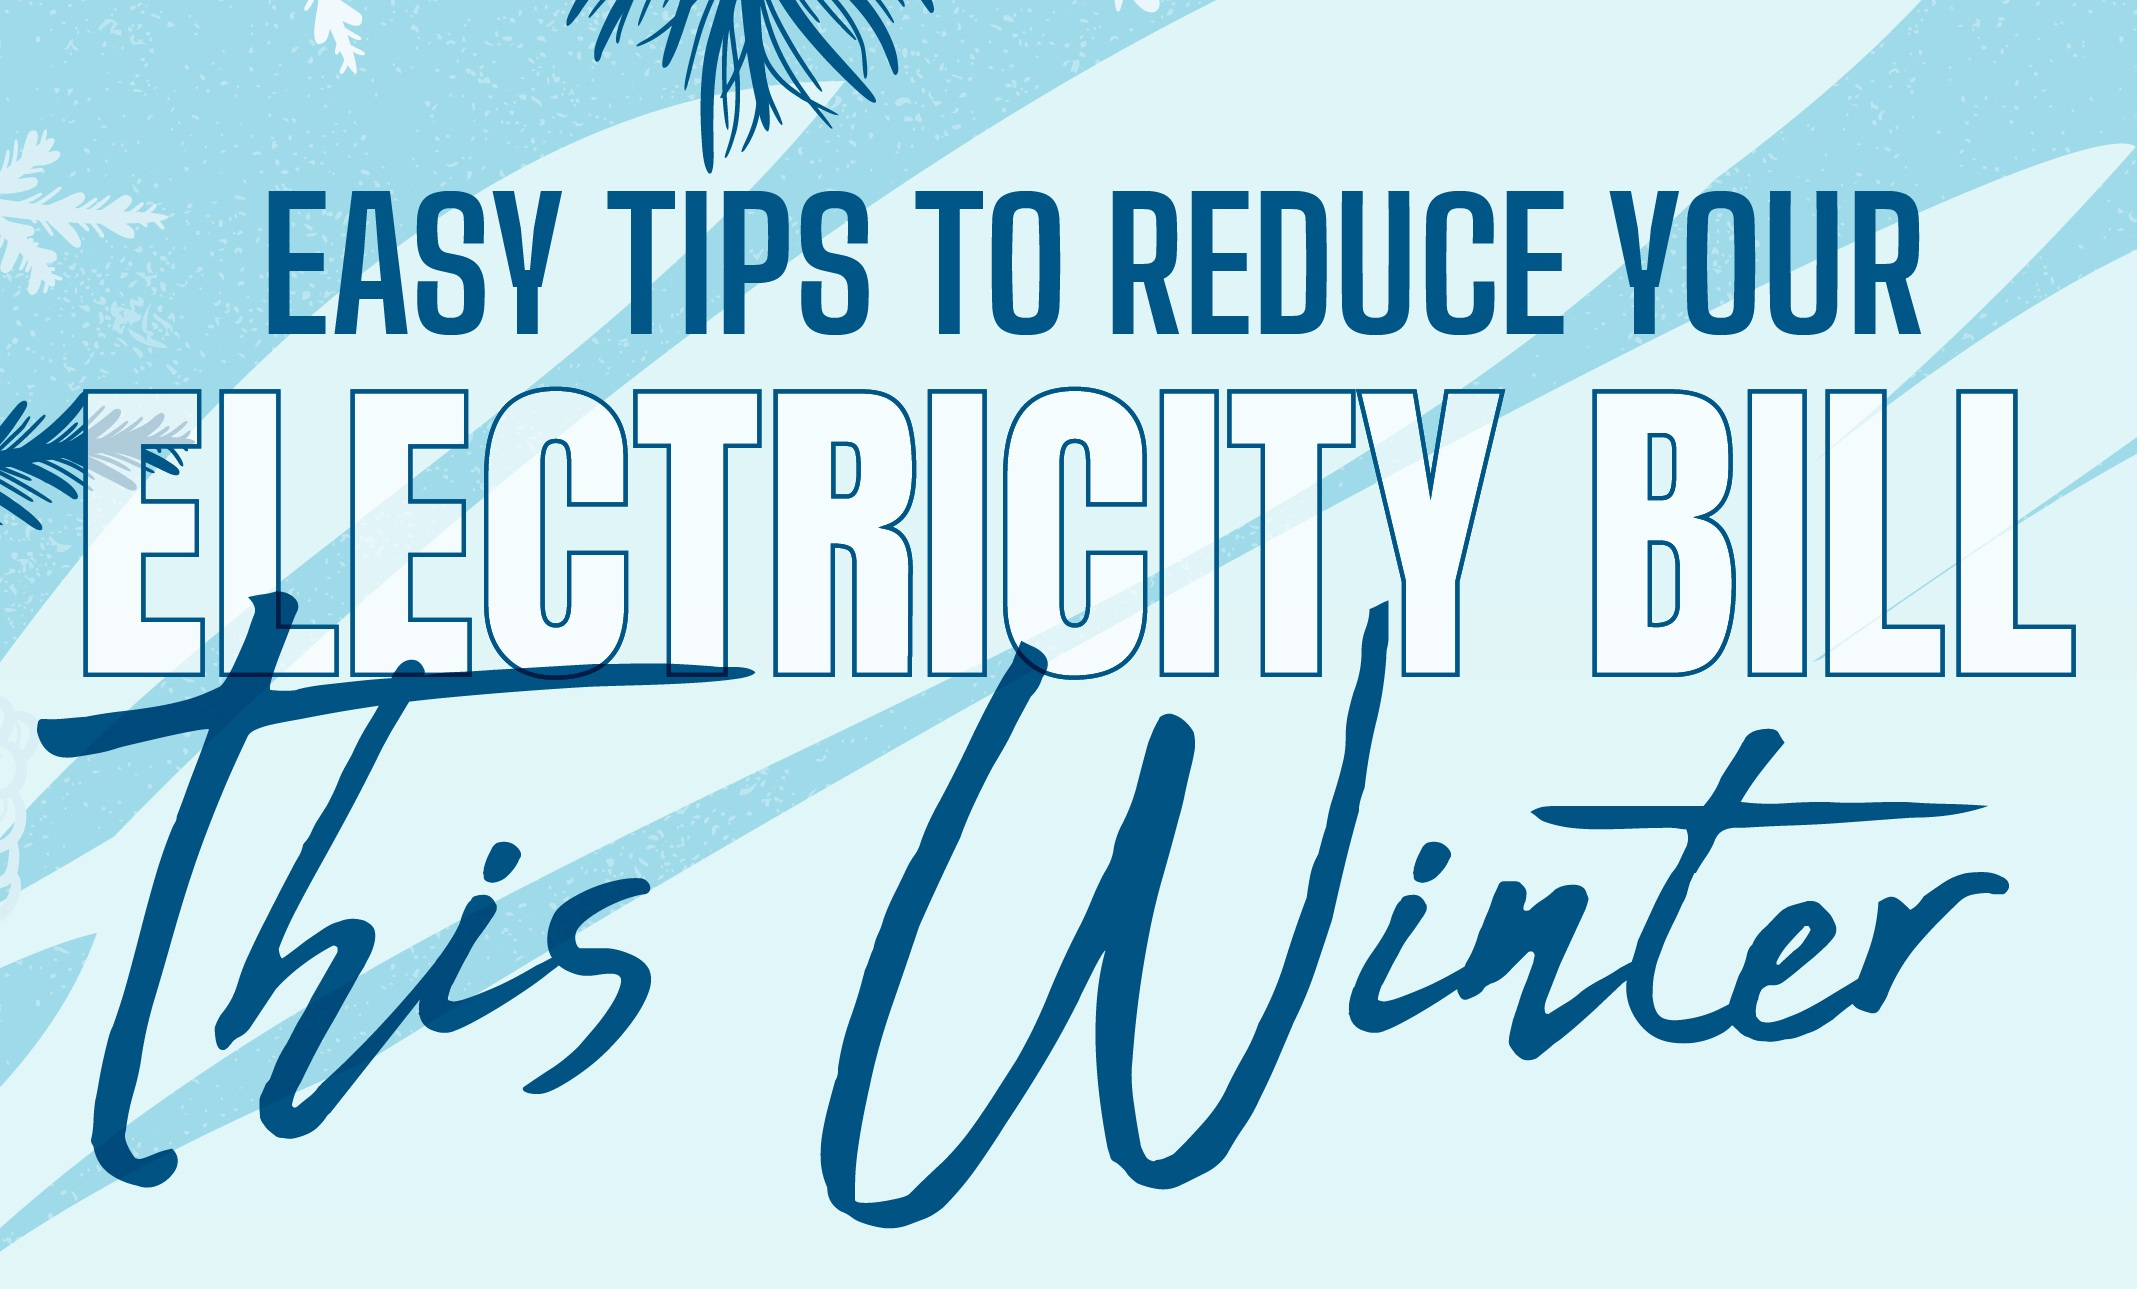 Easy tips to reduce your Electricity Bill this Winter